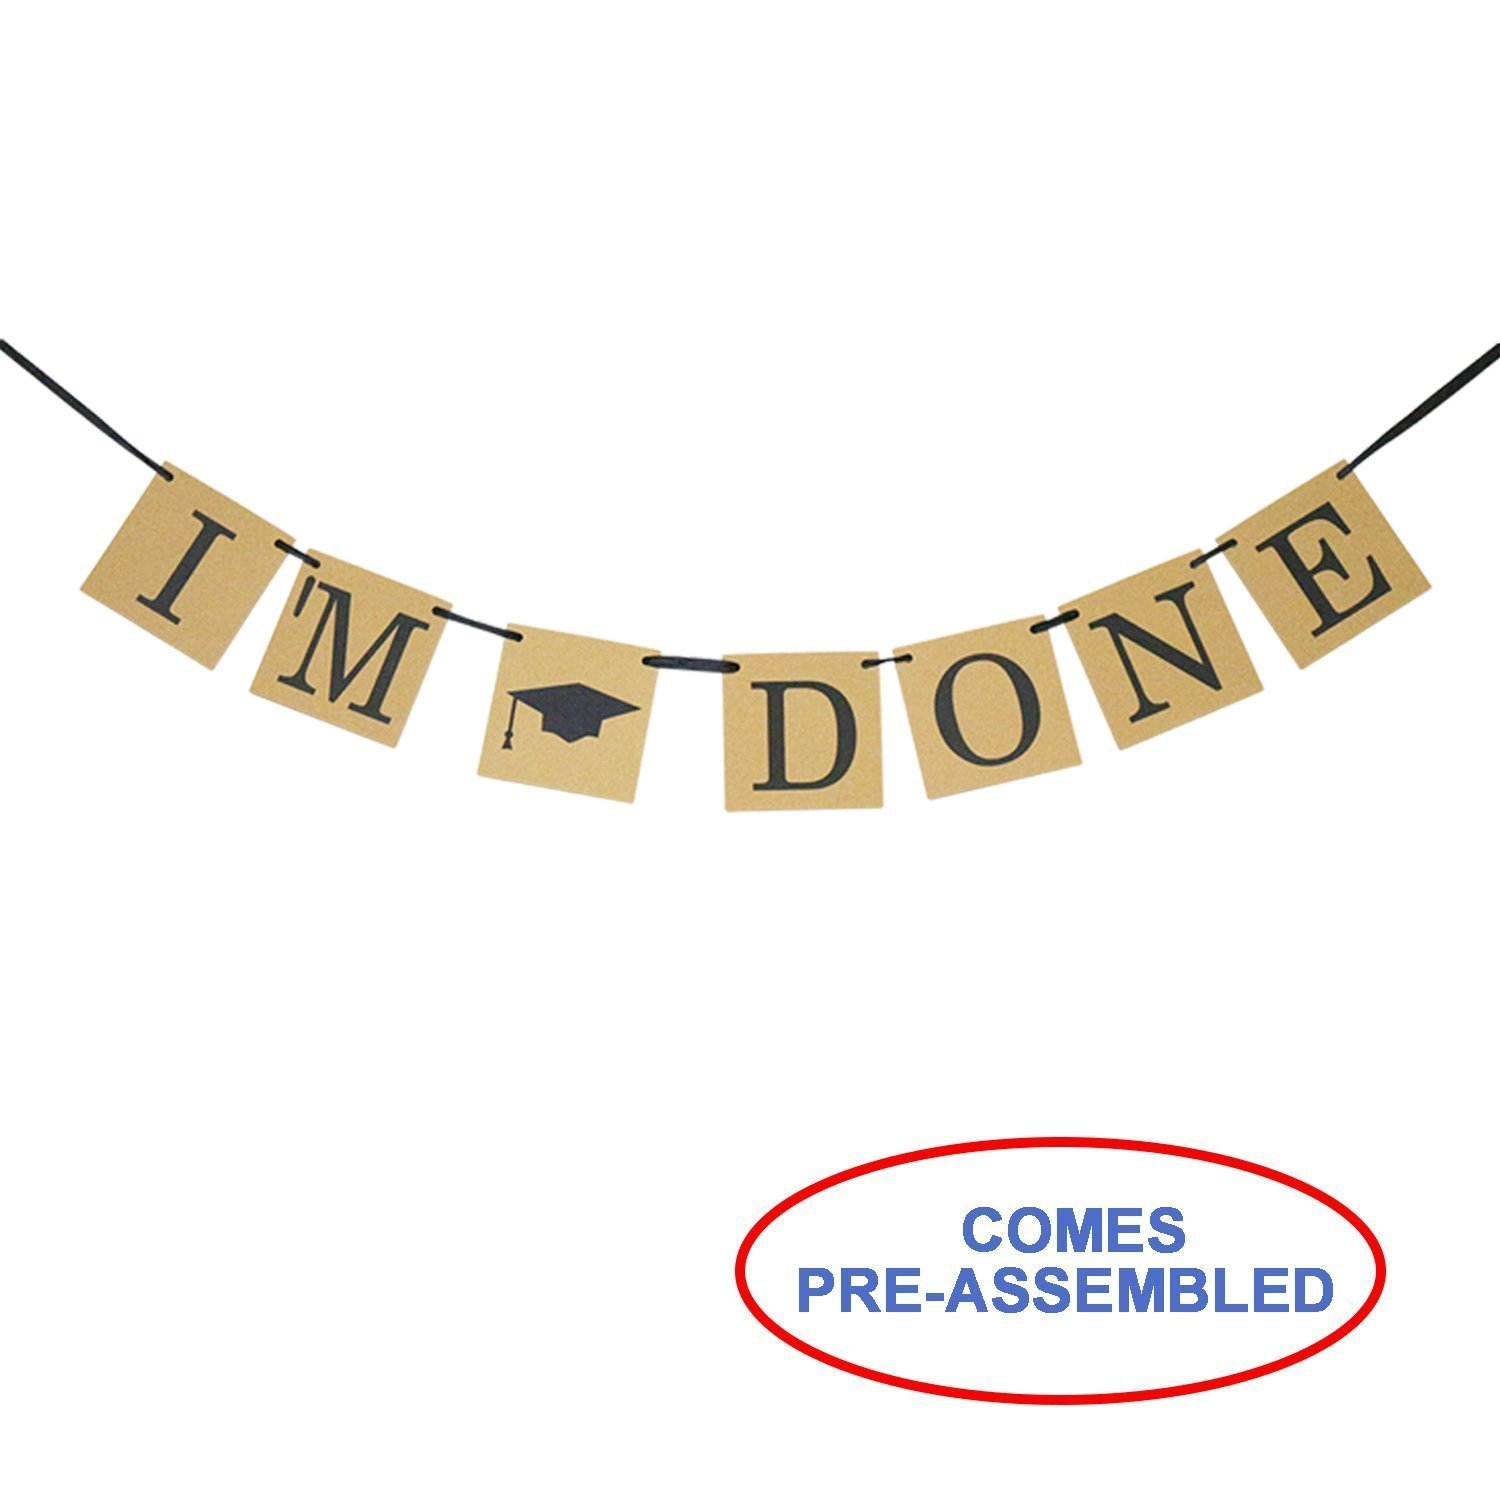 Graduation Banner - I'm Done Banner with Gradn Cap Symbol - Graduation Party Decorations Partyprops